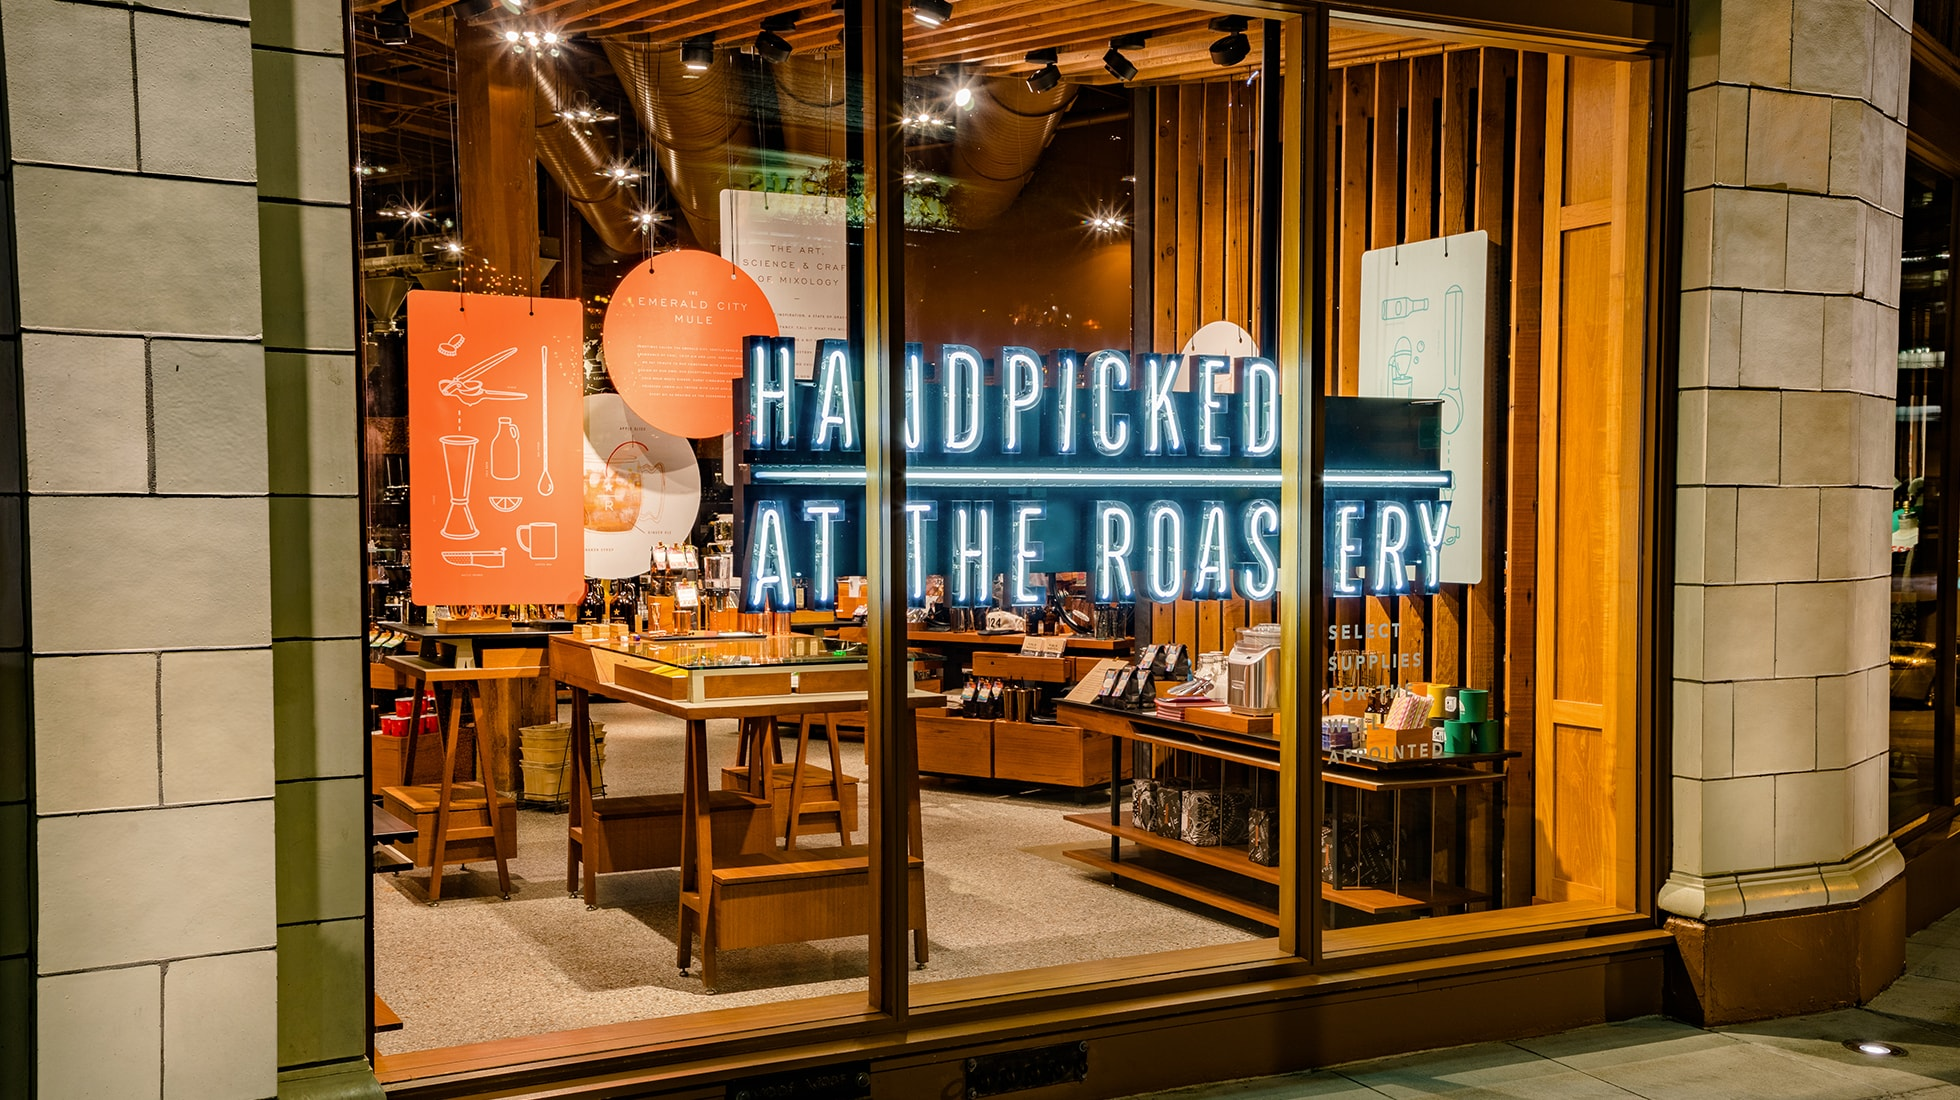 """Storefront with neon sign that reads """"Handpicked at the Roastery"""" with merchandise in the background"""